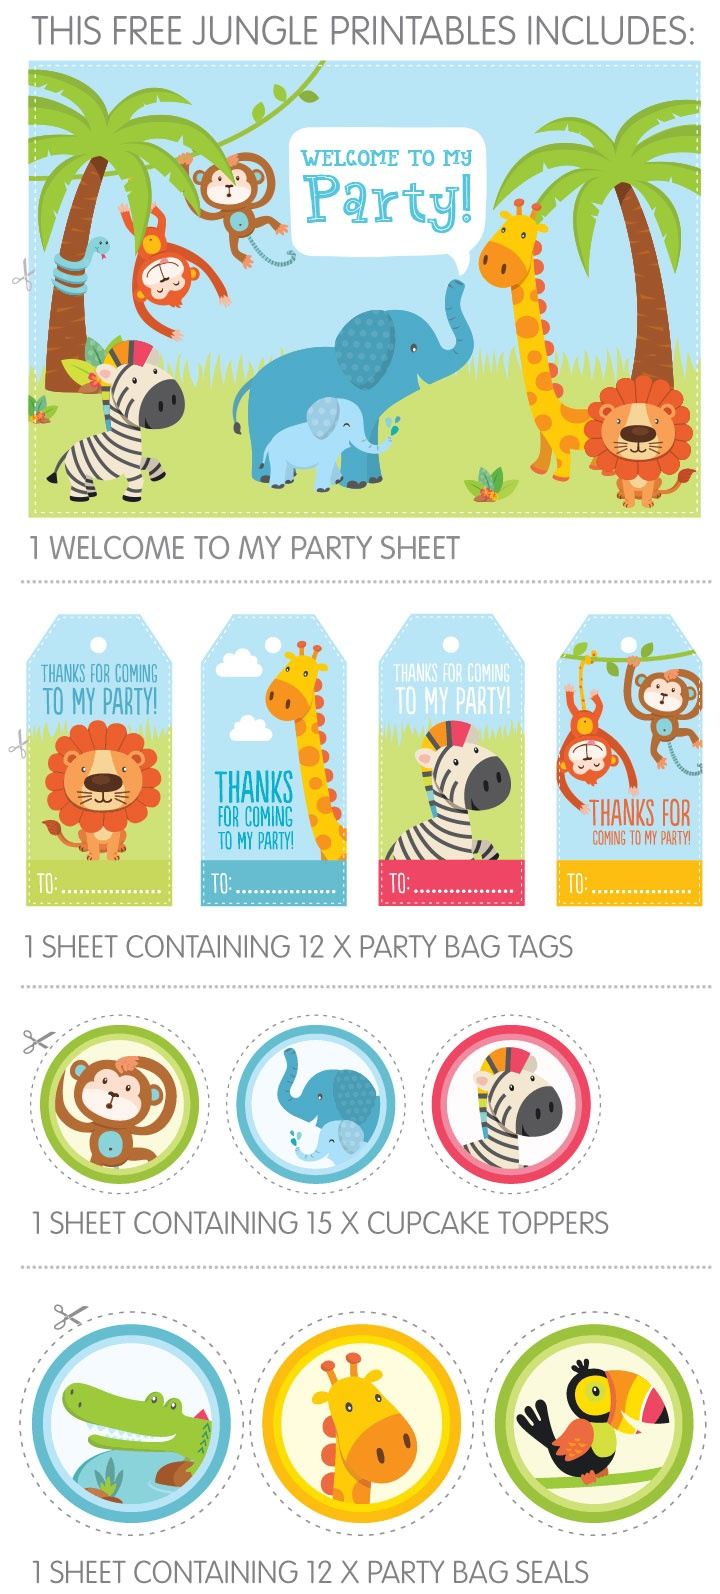 Free Jungle Party Invitation Printables - Free Party Printables